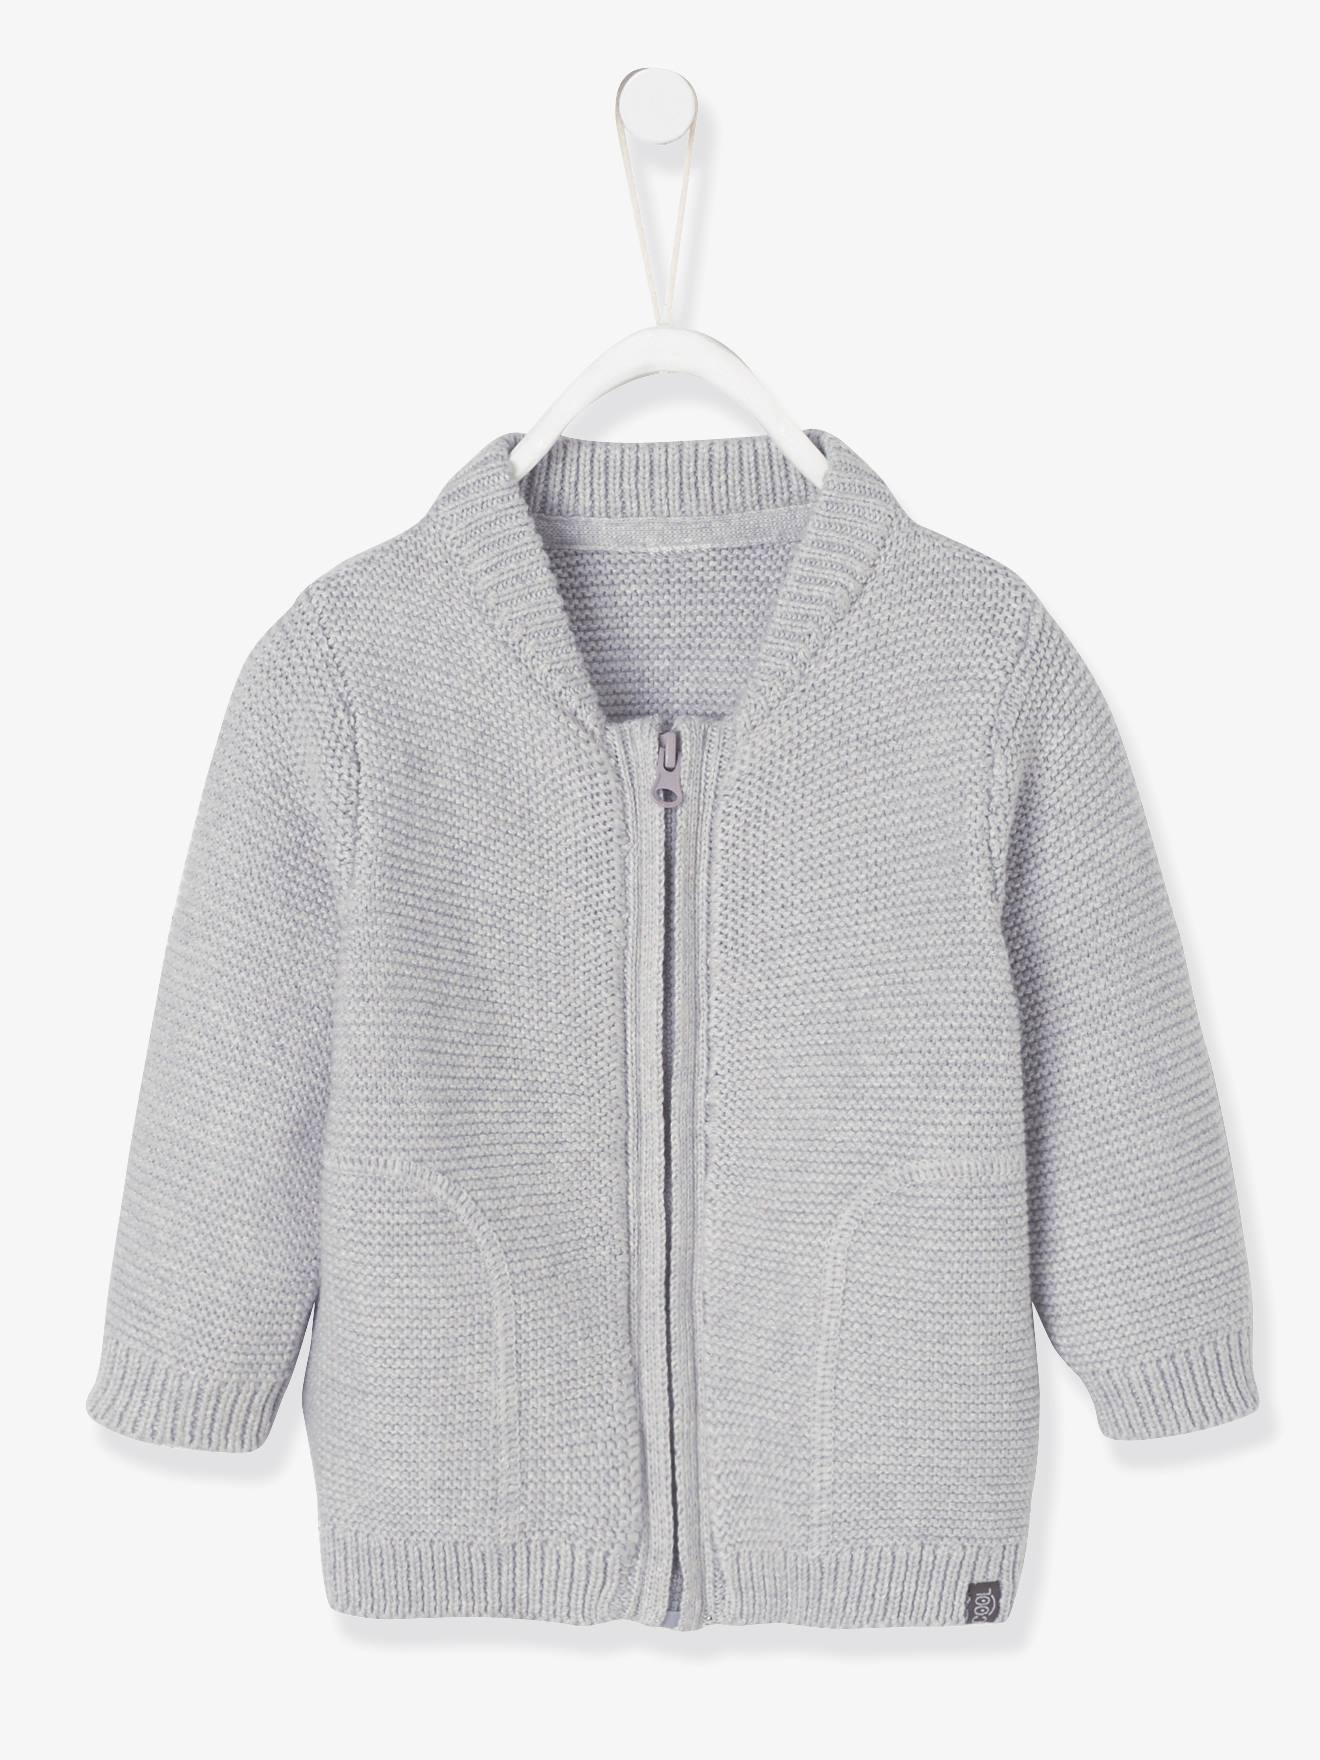 977f52ff6 Purl Stitch Knit Cardigan for Baby Boys - grey light mixed color